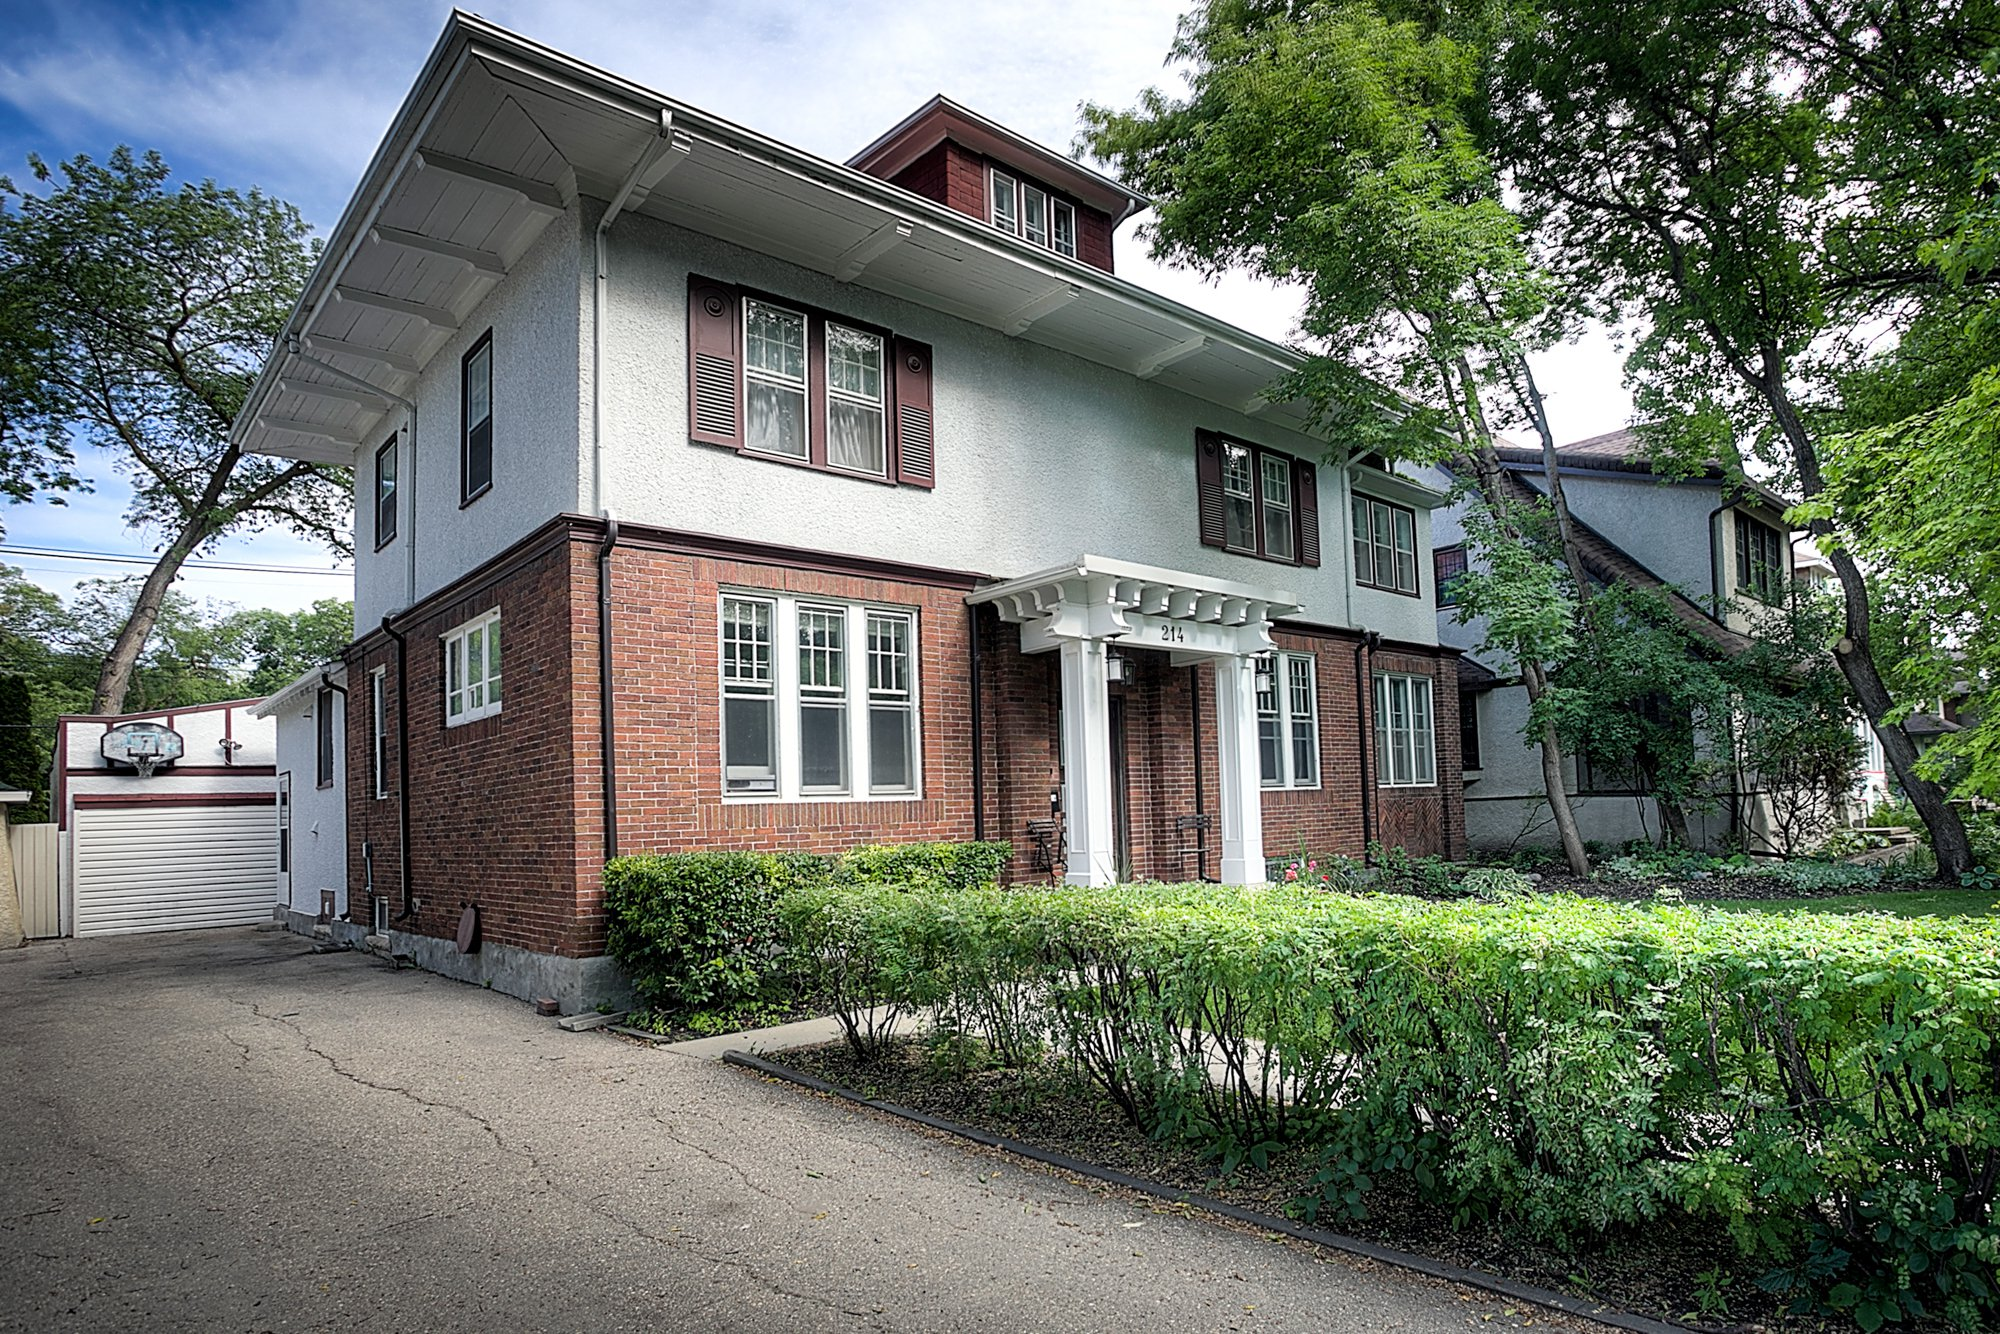 Main Photo: 214 Oxford Street in Winnipeg: River Heights North Single Family Detached for sale (1C)  : MLS®# 1917710